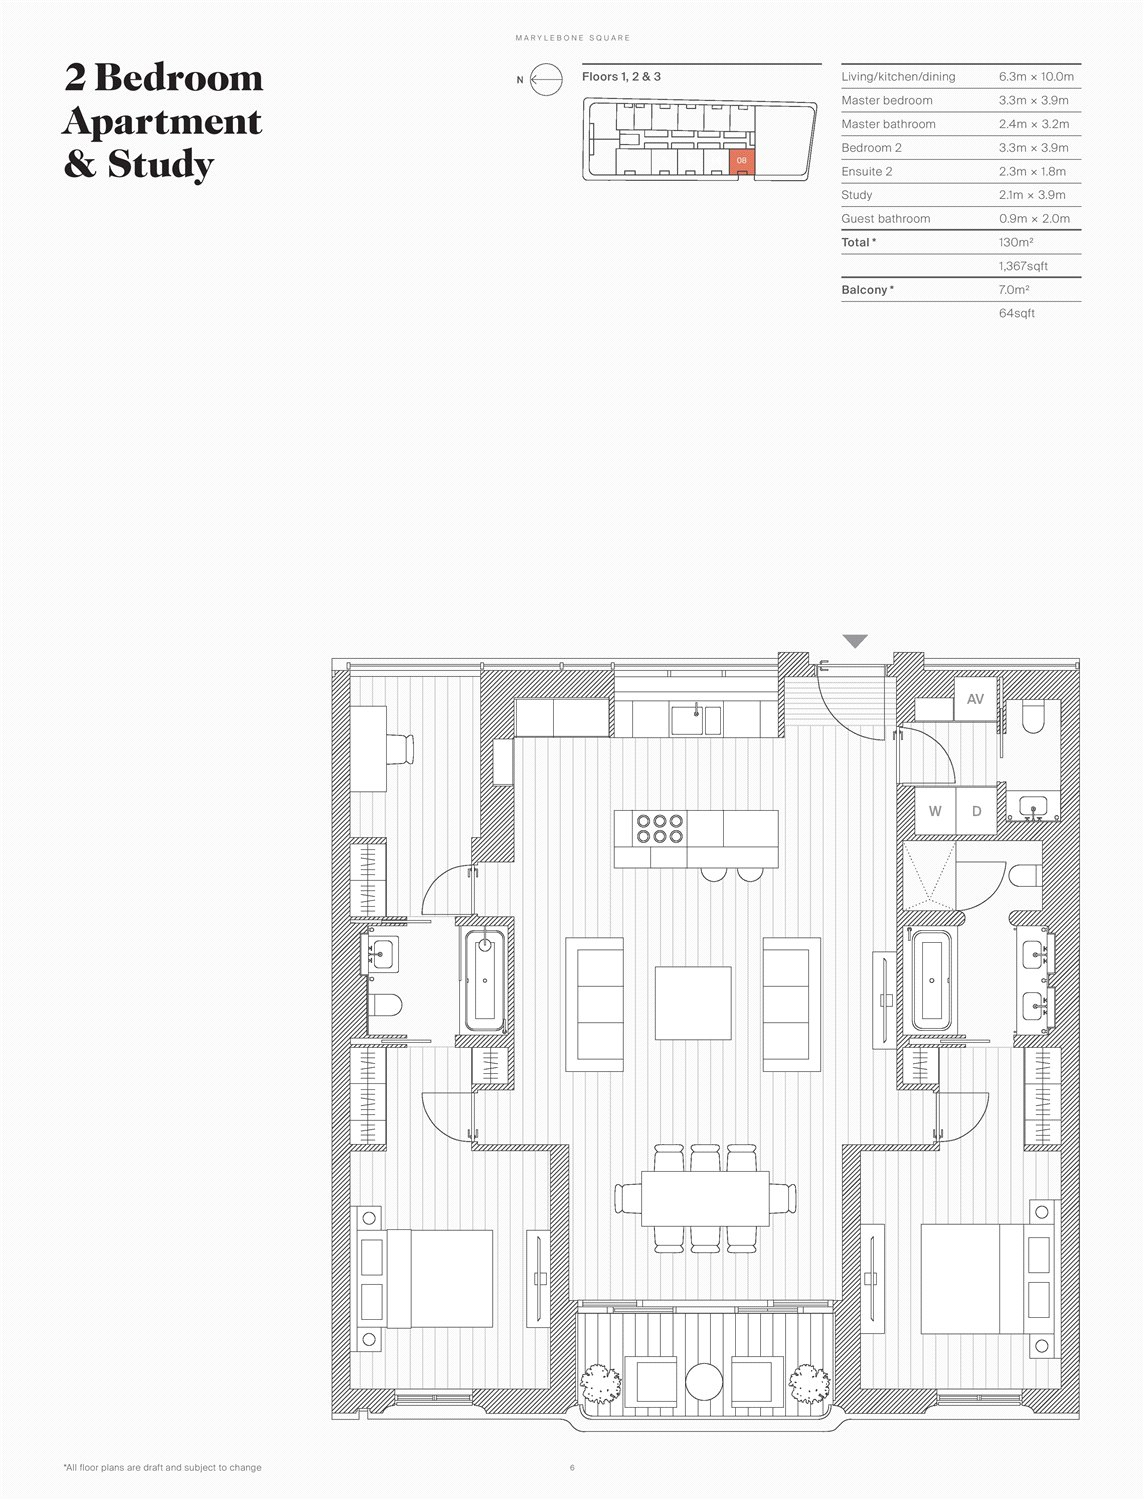 Floor Plan of Marylebone Square, London, W1U